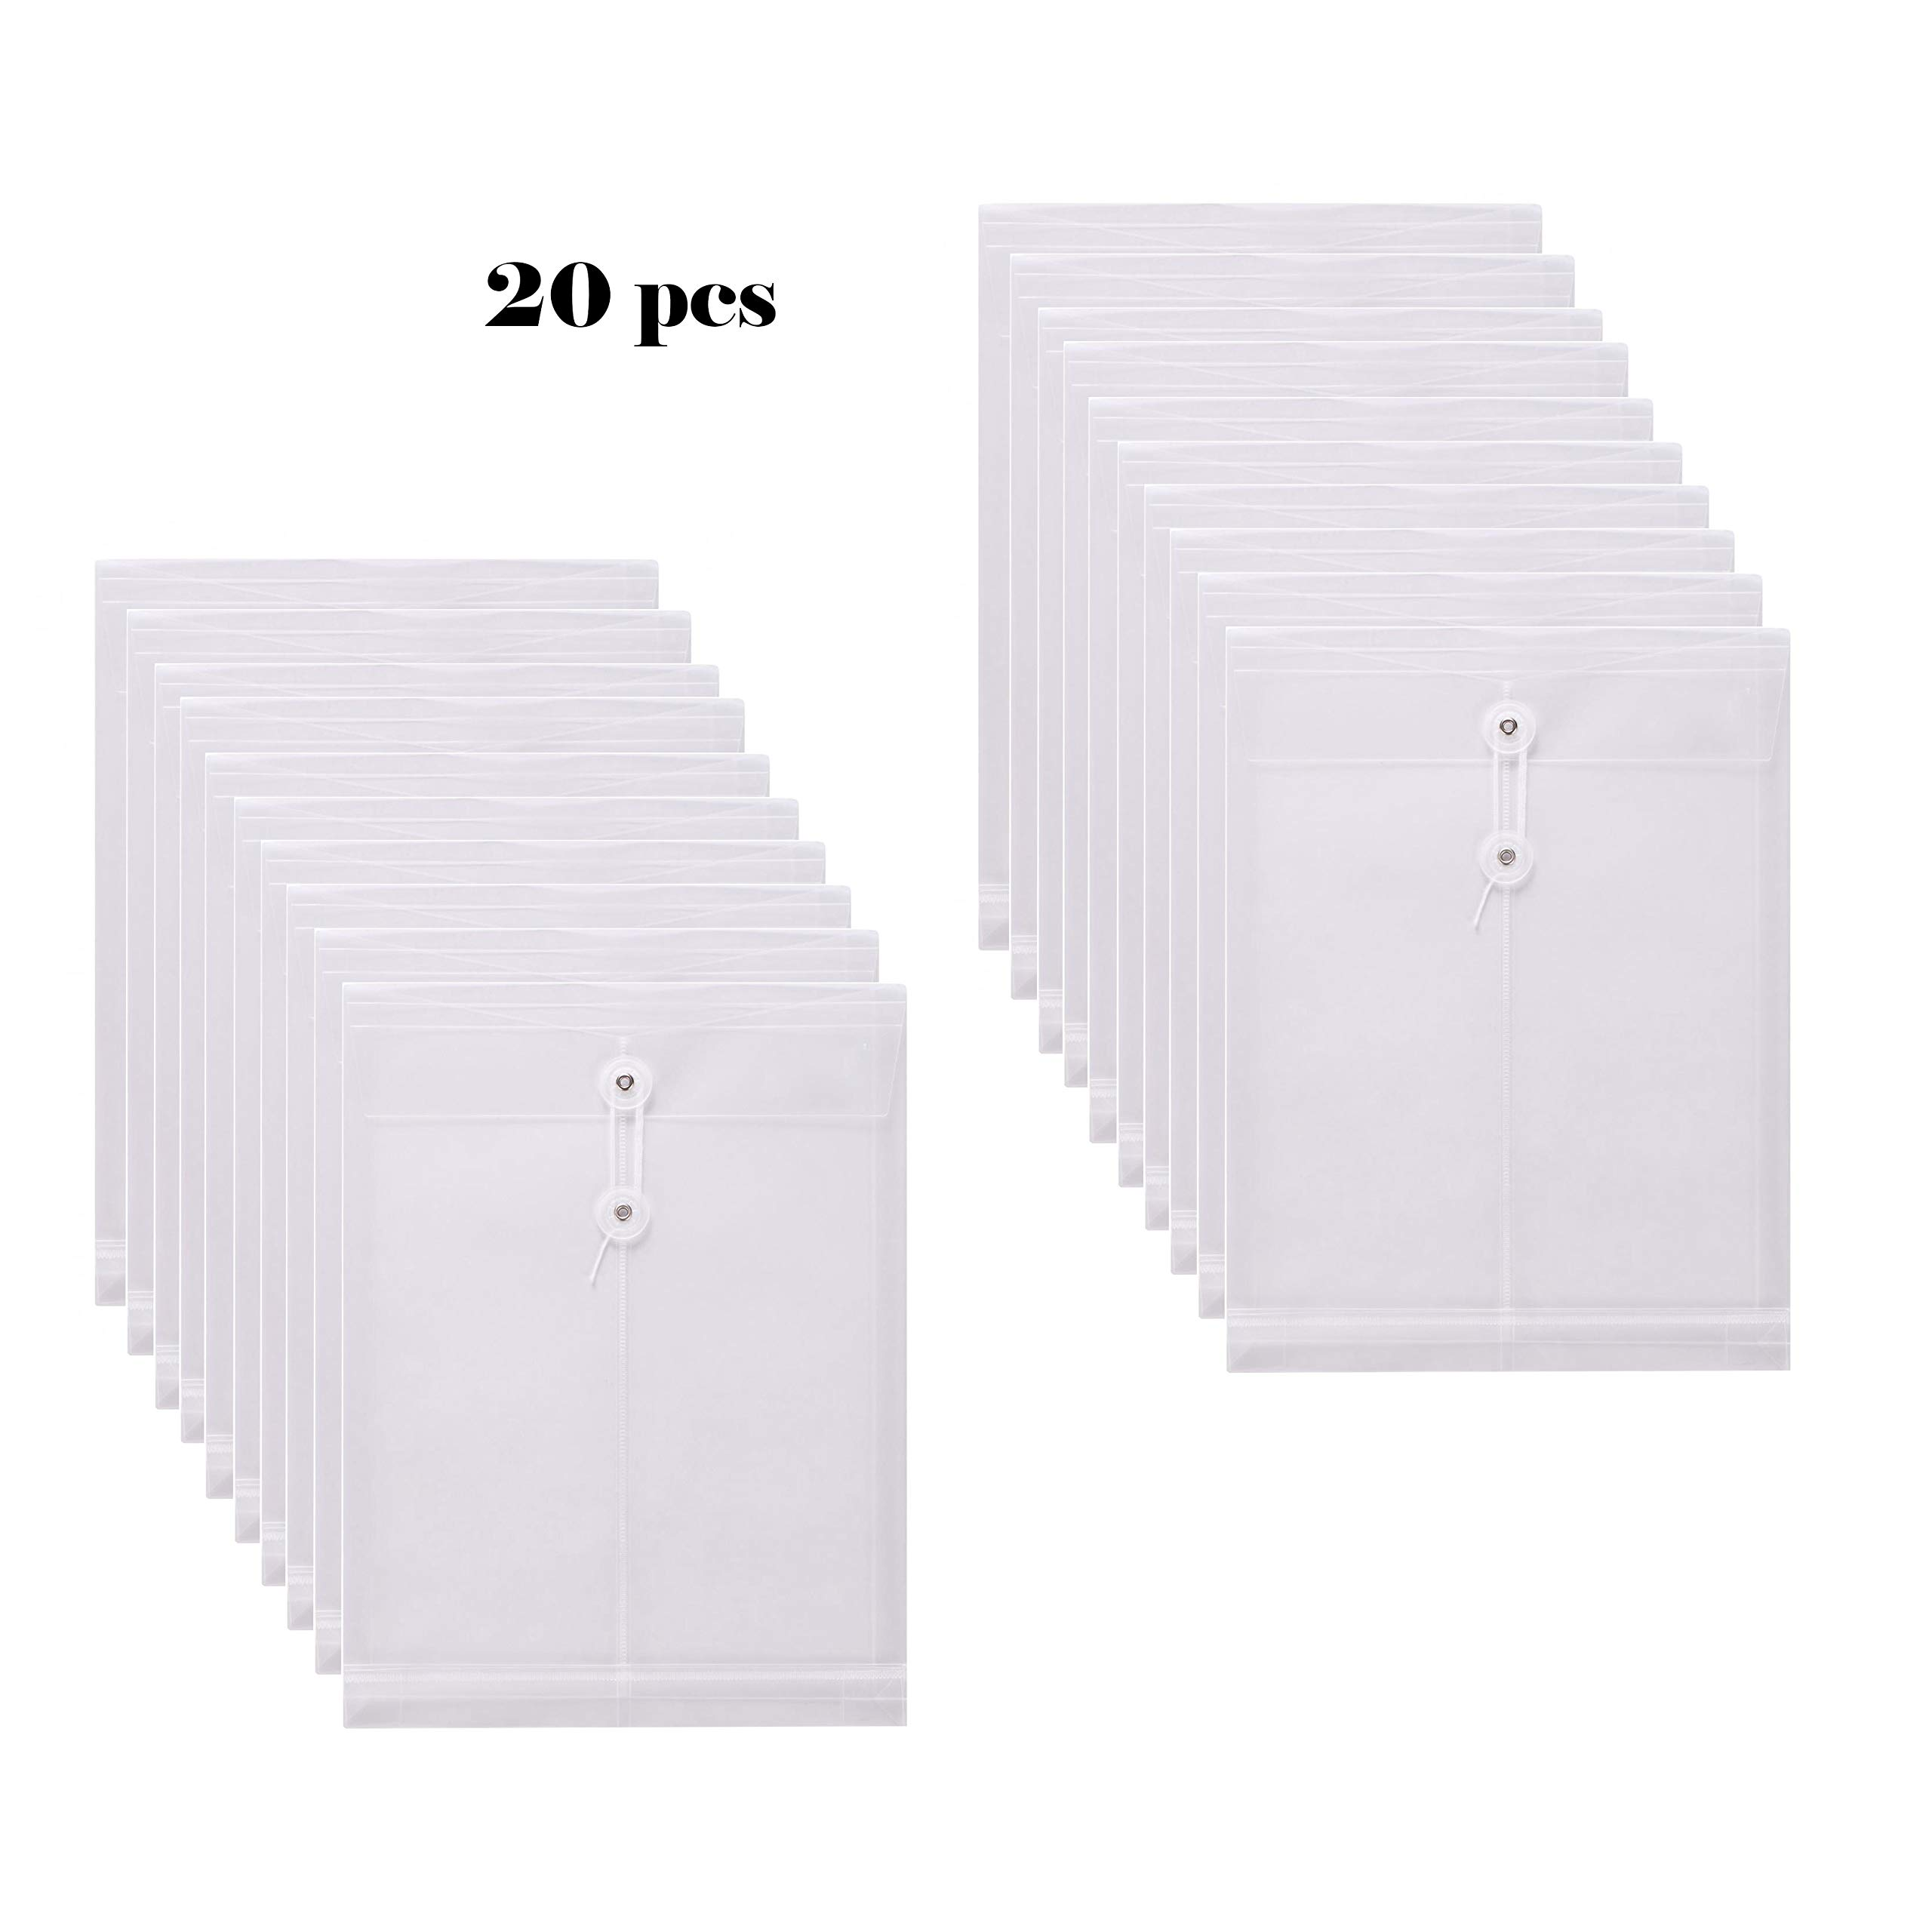 SMARTOFFICE Clear String Closures Poly Envelopes w/Top Opening Folder Pocket Pack of 20 Bottom with Expanding Gussett (Clear)